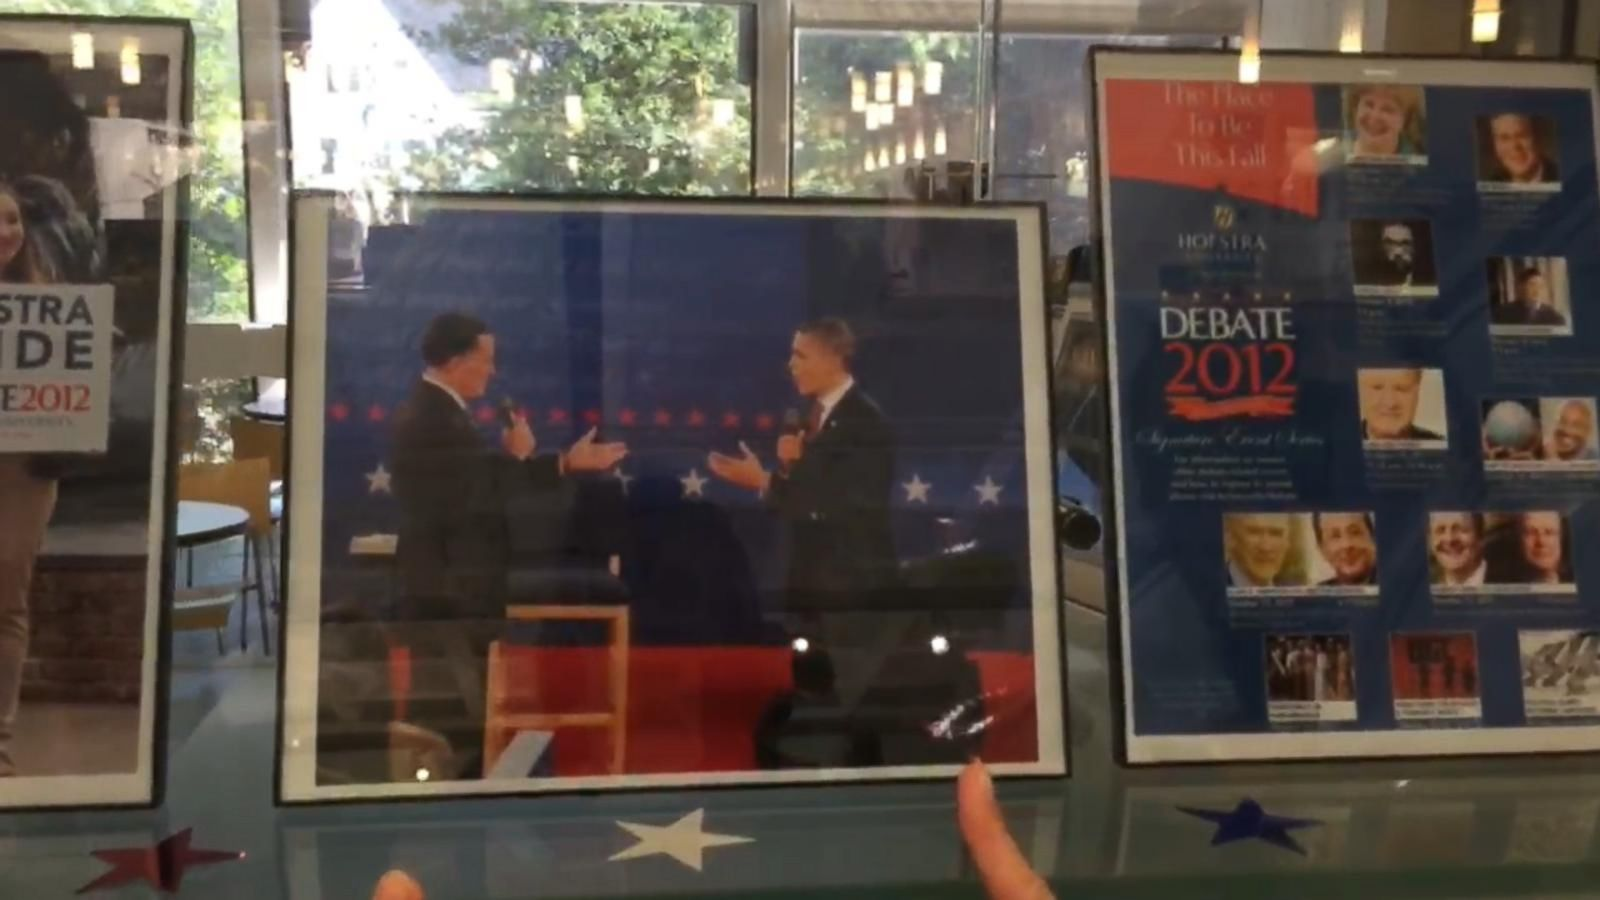 VIDEO: Hofstra University Exhibit Chronicles Past Debates